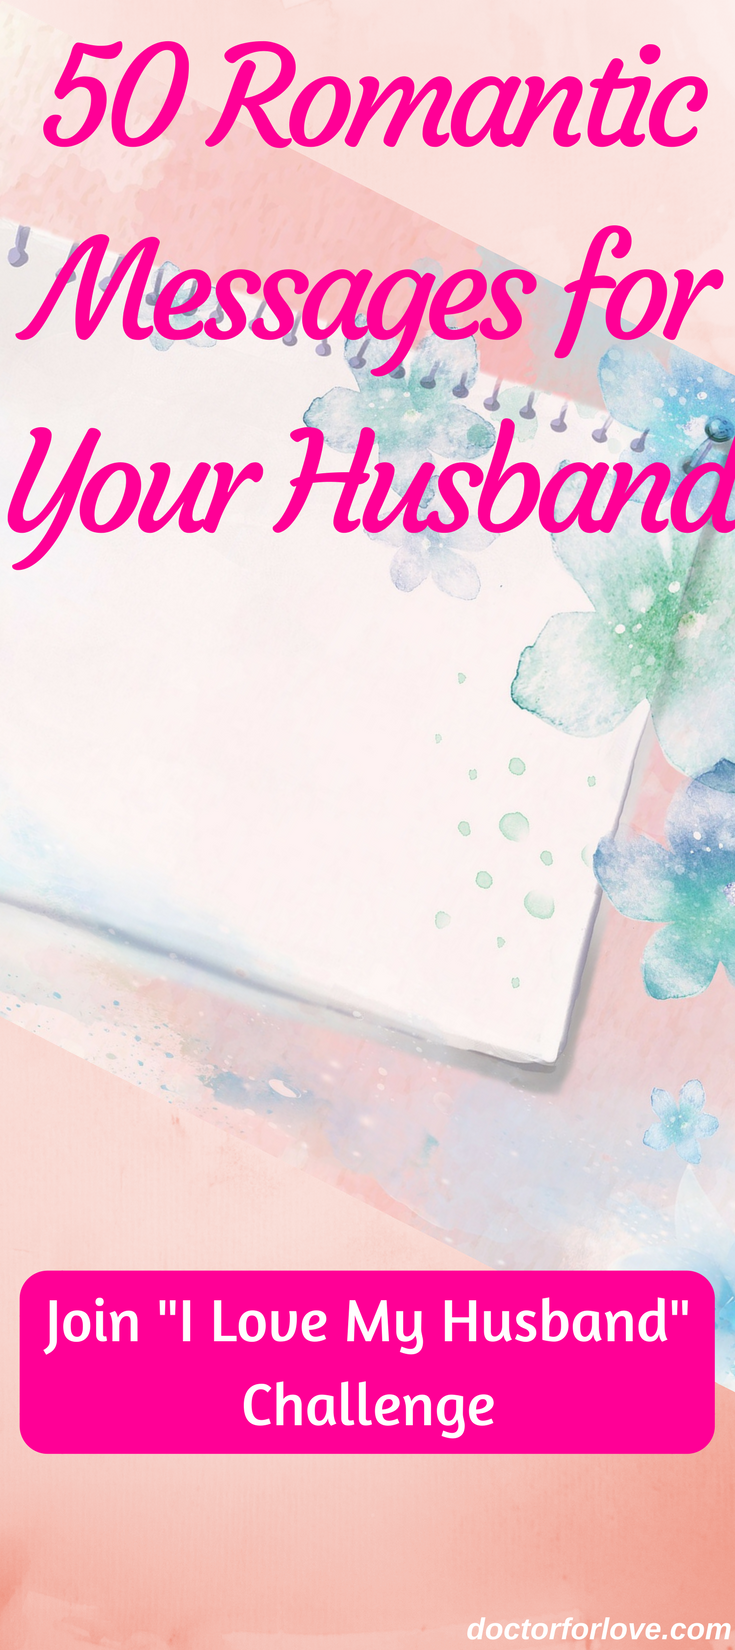 romantic messages for my husband 50 days challenge